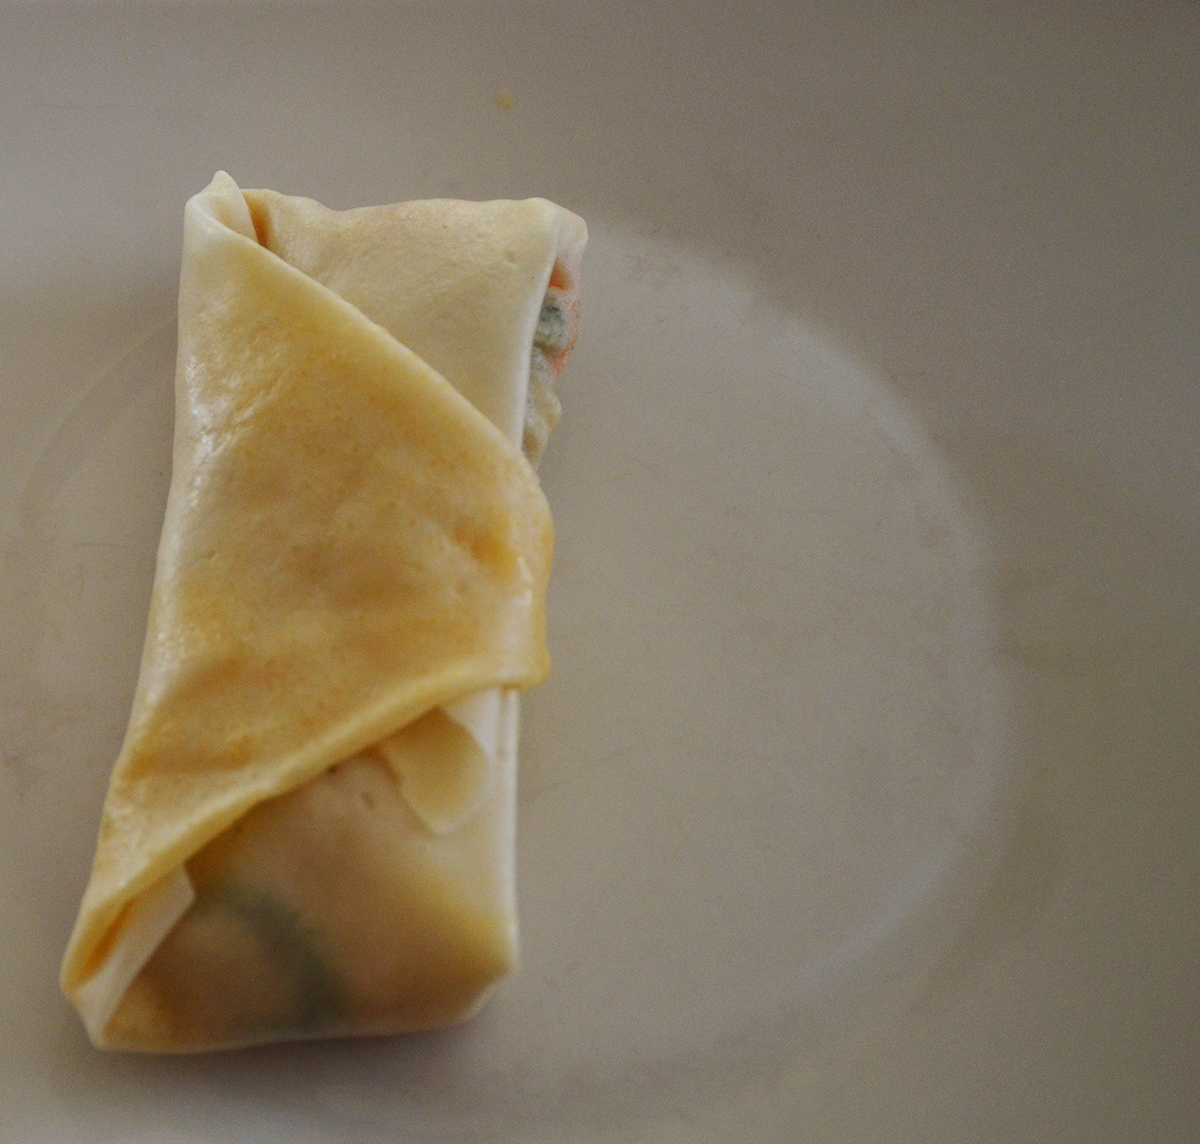 Spring roll Asia Scenic cooking school Double-Barrelled Travel